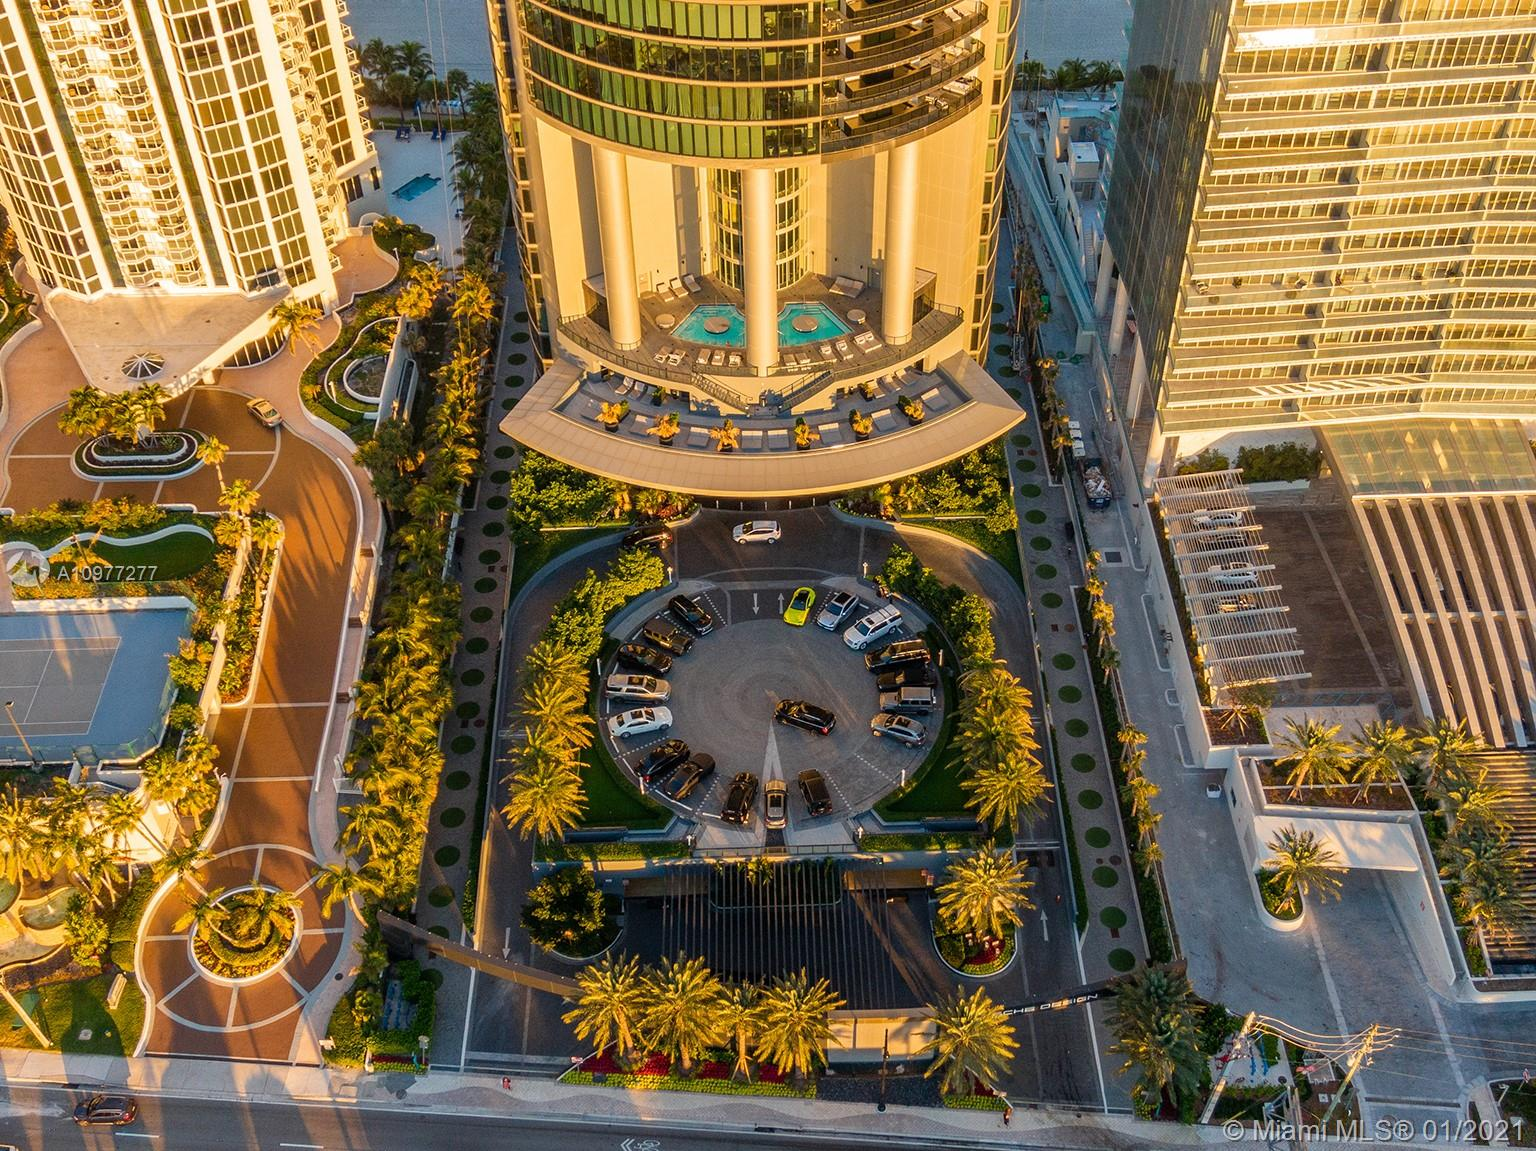 2 STORY DUPLEX WITH 3 BED, 4/1 BATHROOM, AMAZING MASTER BEDROOM WITH SPECTACULAR VIEW, SUMMER KITCHEN WITH MARBLE COUNTER TOP AND MIELE APPLIANCES. BATHROOMS WITH TOTO SMART TOILETS, SERVICE ROOM WITH BATHROOM. NEW WASHER AND DRYER. 3,130 SF. WRAP AROUND BALCONY AND FLOOR TO CEILING WINDOWS WITH THE MOST BREATHTAKING UNOBSTRUCTED PANORAMIC VIEW OF THE OCEAN, BEACH, BAY, SKYLINE AND INTRACOASTAL FROM EVERY ROOM. PRIVATE ROBOTIC CAR ELEVATOR TO THE APARTMENT FOR 2 CARS PARKING ON 50th. FLOOR ALLOWS CARS TO BE VISIBLE FROM LIVING ROOM. FIVE STAR AMENITIES, SPA, GOLF, RACE CAR SIMULATOR, OCEAN AND SUNSET POOL, RESTAURANT, BAR, GYM, SAUNA, THEATER AND BEACH SERVICE.